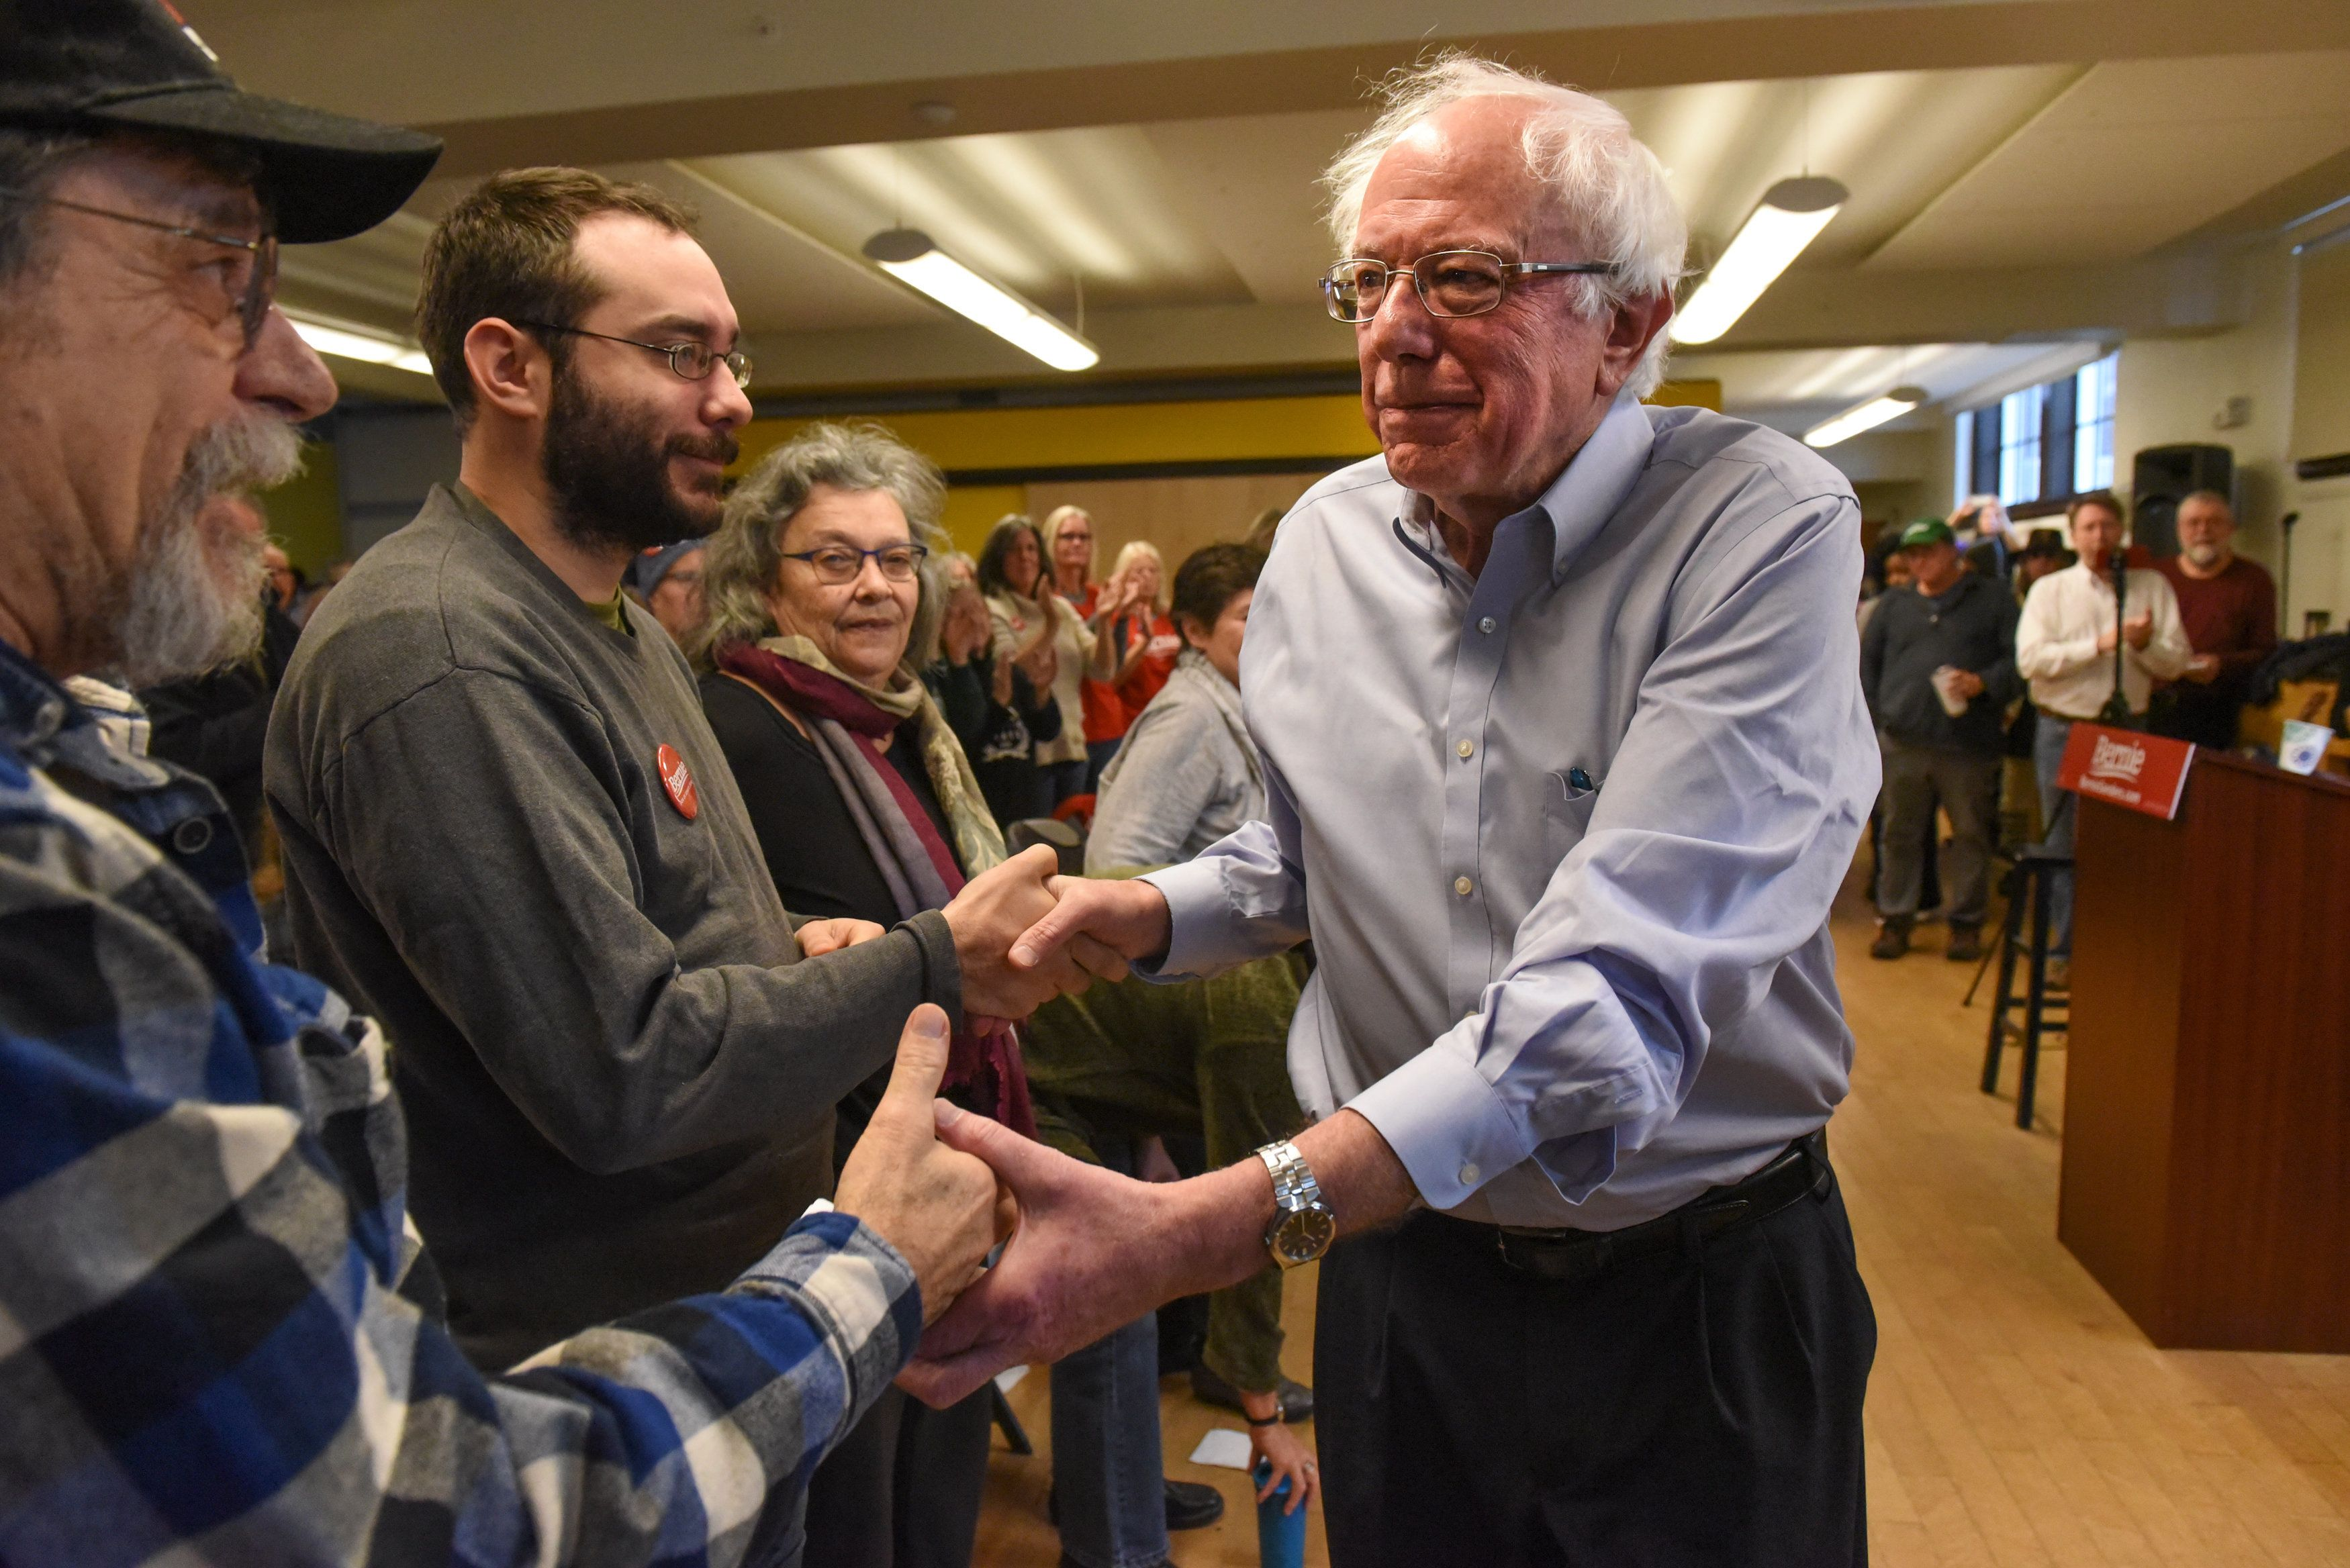 Bernie Sanders to run for president again